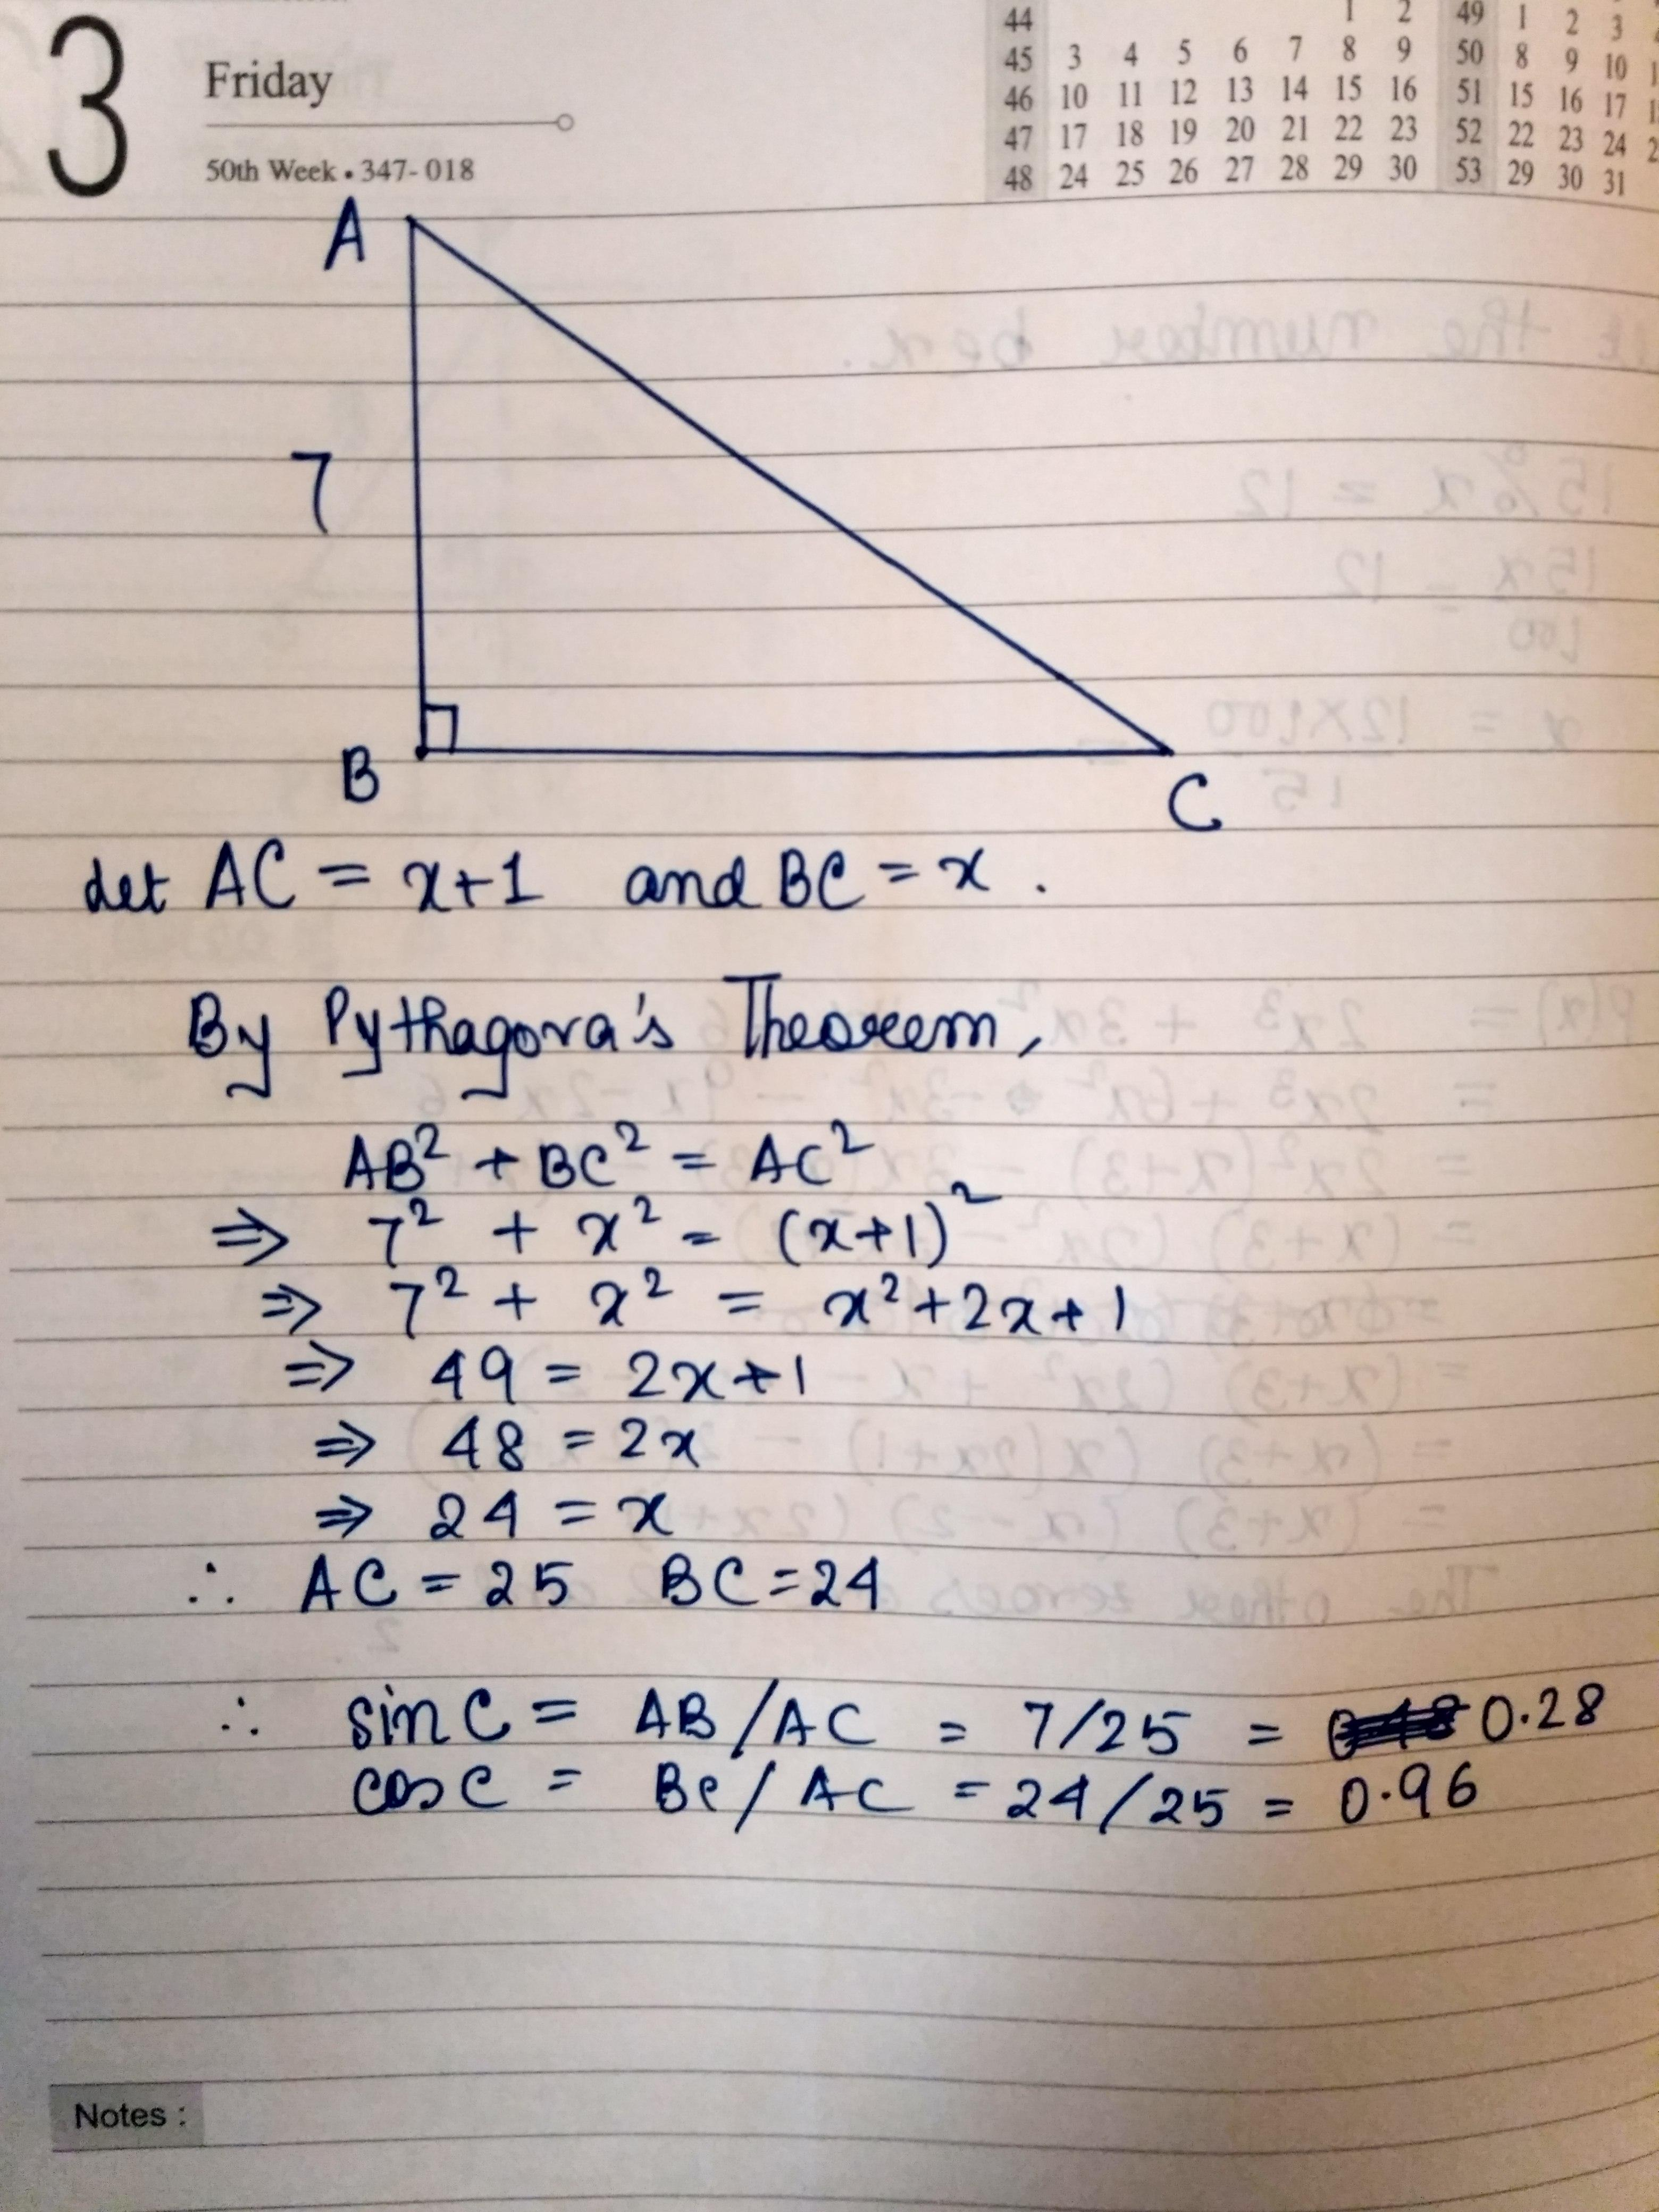 In Triangle Abc Right Angled At B Ab=7cm And (ac-bc) =1cm. Find The Value  Of Sin C And Cosc. - Brainly.in